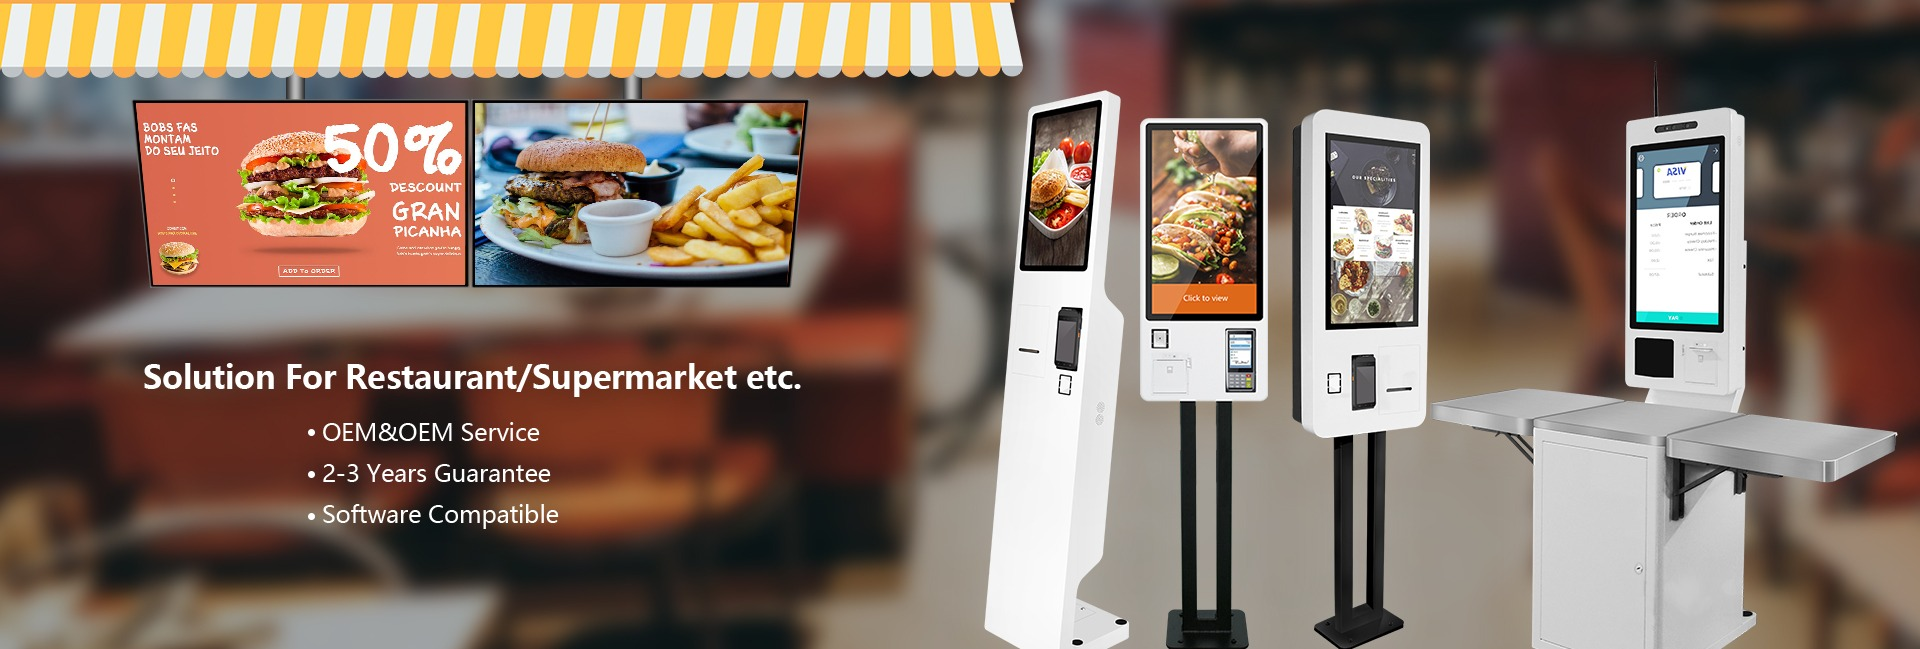 pos apps Digital Screens and self order kiosk